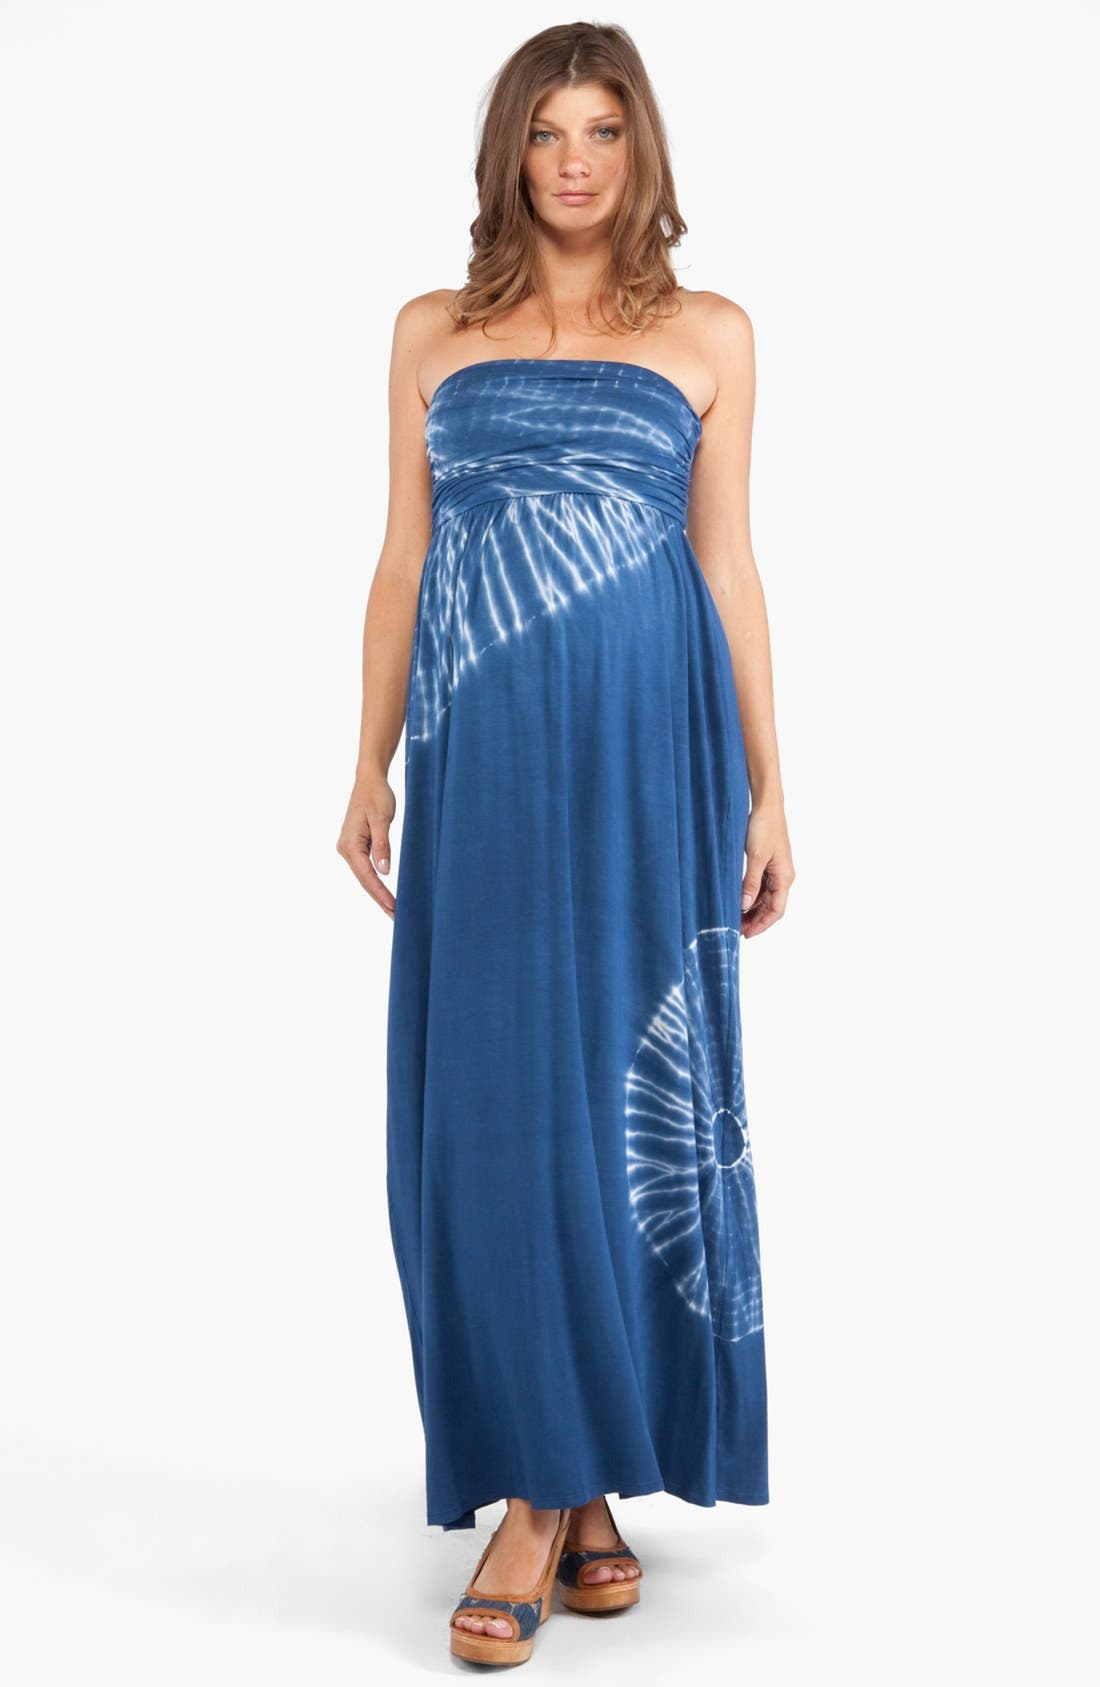 Alternate Image 1 Selected - Nom Maternity 'Aurora' Tie Dye Maternity Maxi Dress